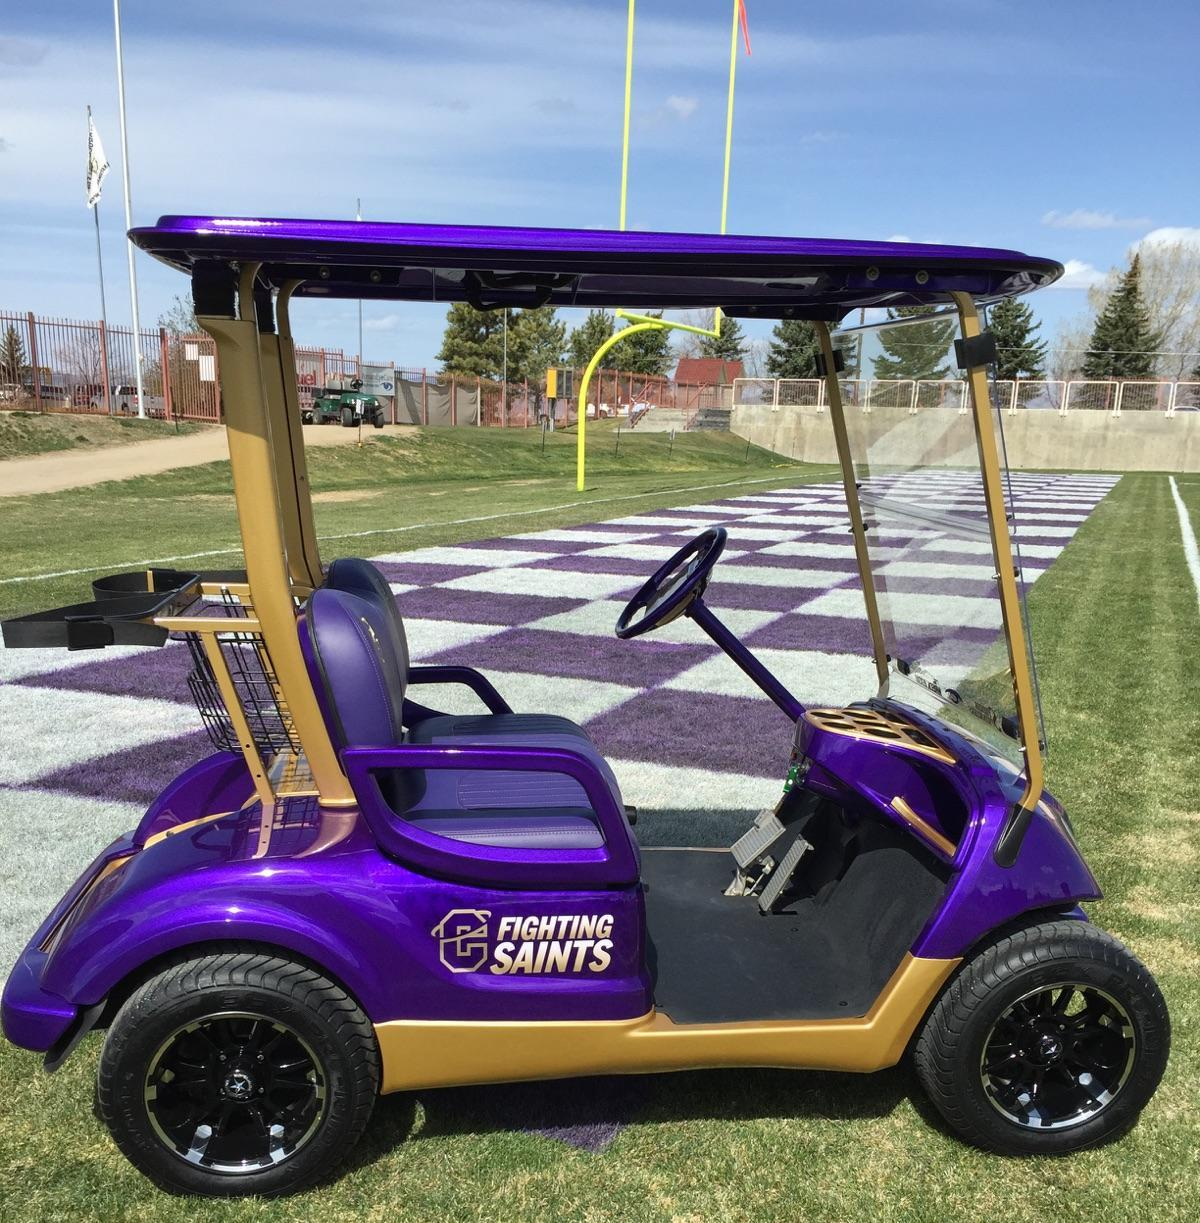 Spieker Sprinklers- The Best sprinkler systems, service, parts and on purple rv, purple bus, purple side by side, purple trailer, purple dune buggy,